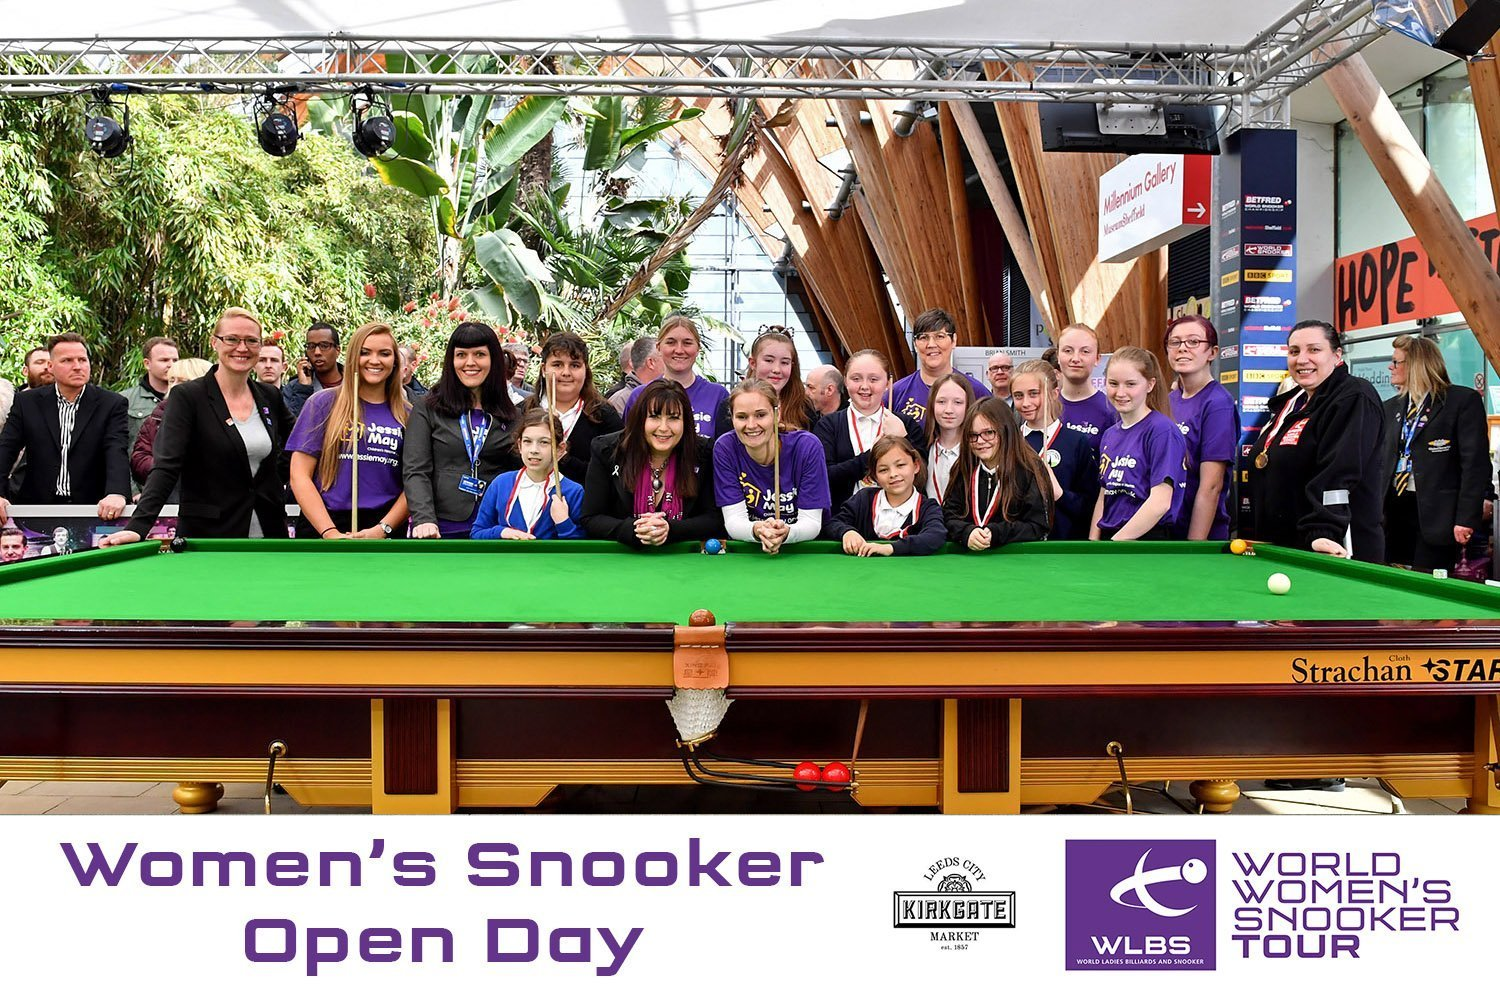 Women's Snooker Open Day 2018